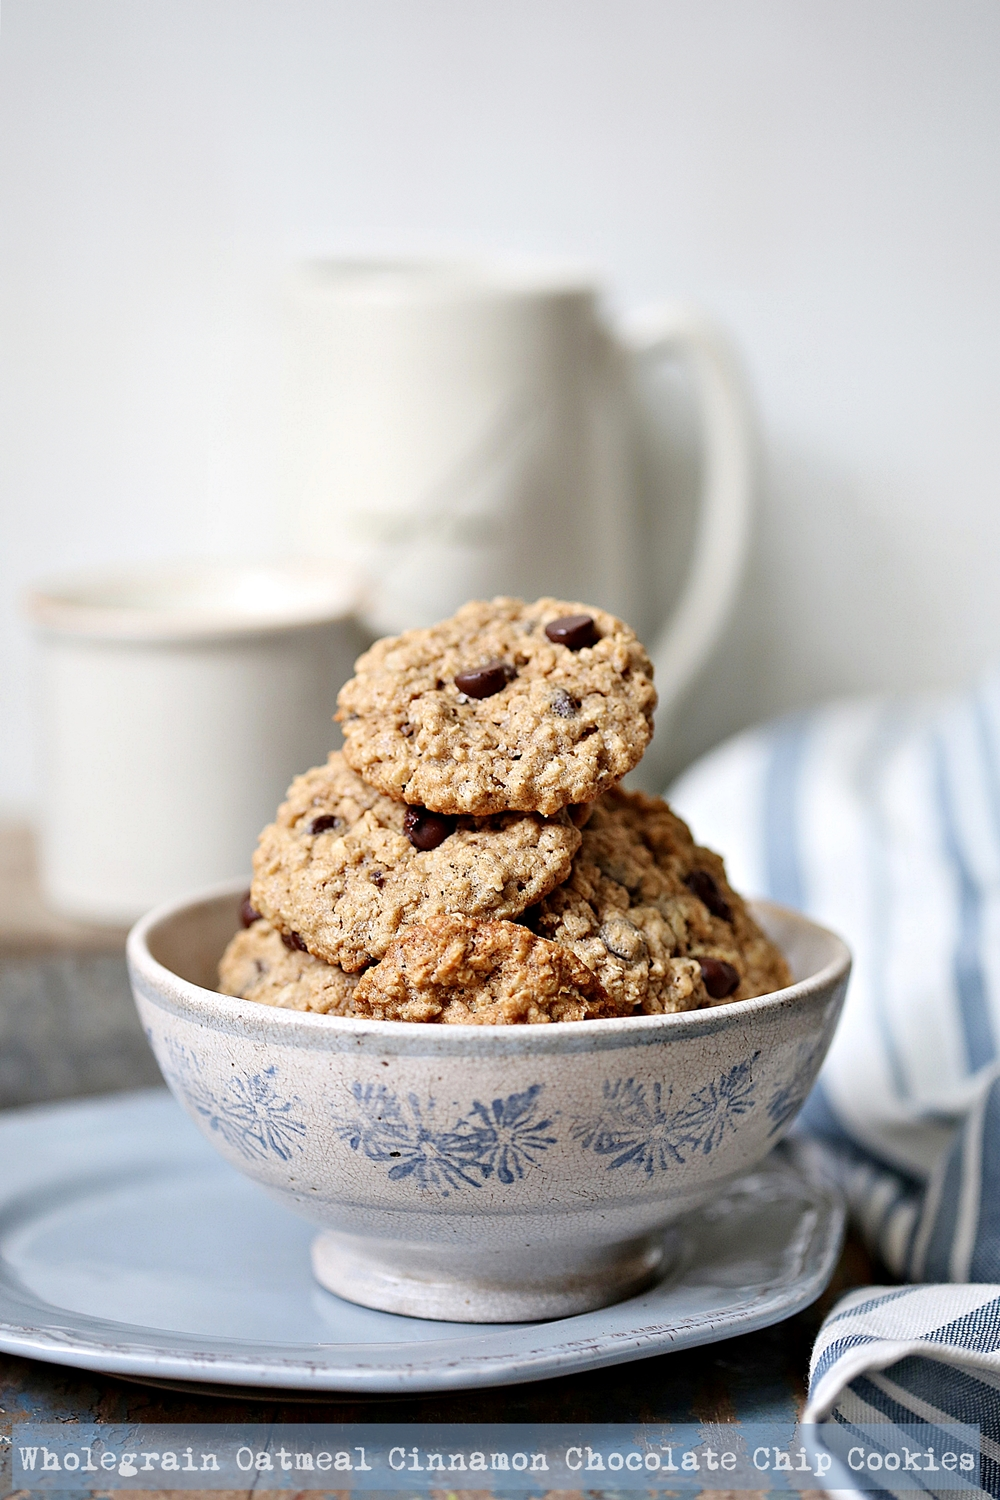 Wholegrain Oatmeal Cinnamon Chocolate Chip Cookies